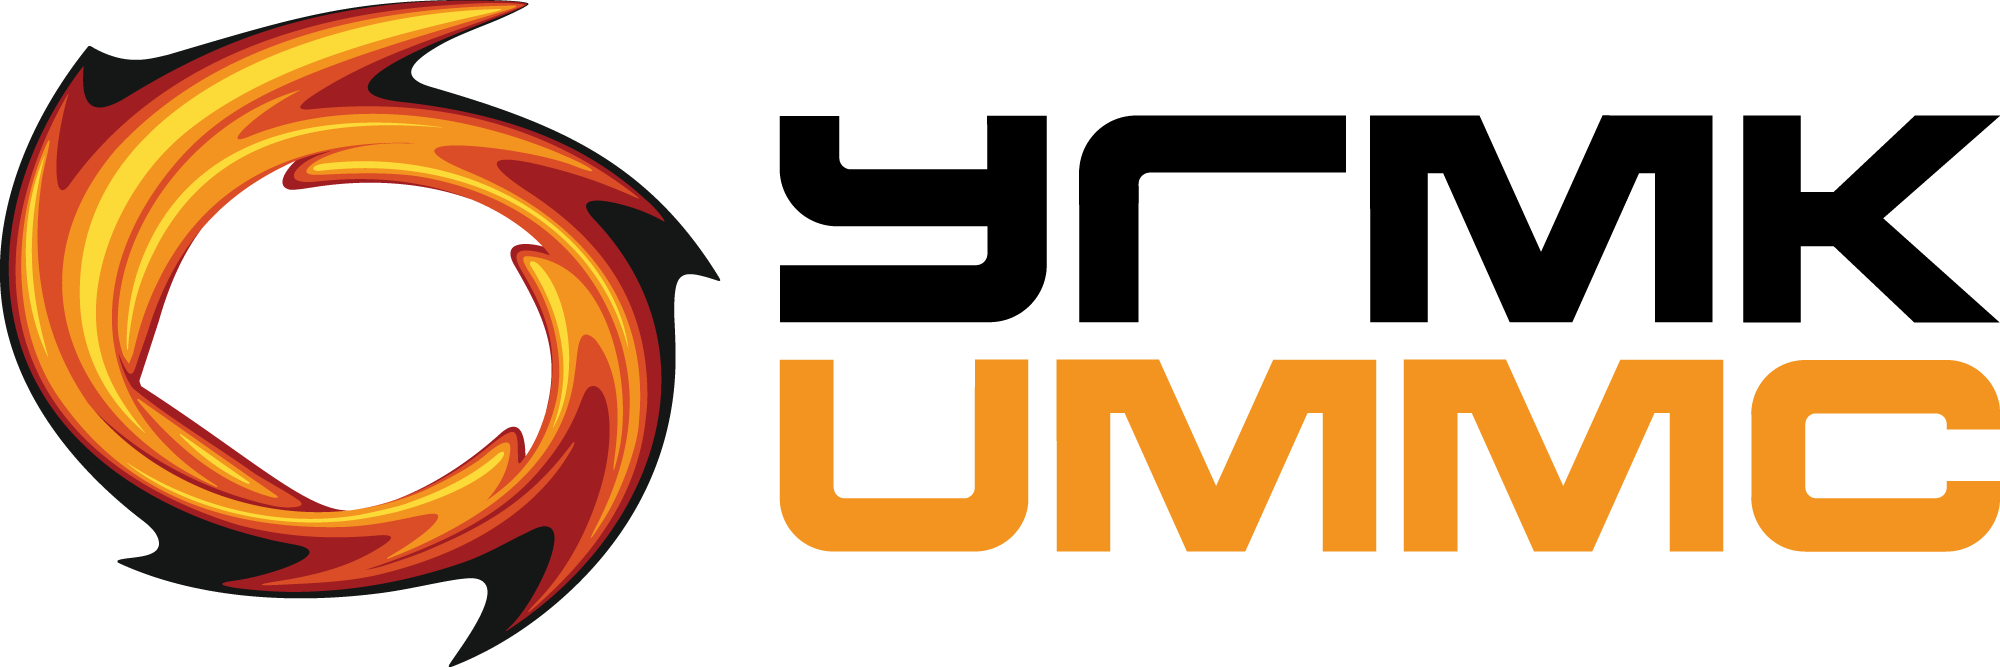 Ural Mining and Metallurgical Company